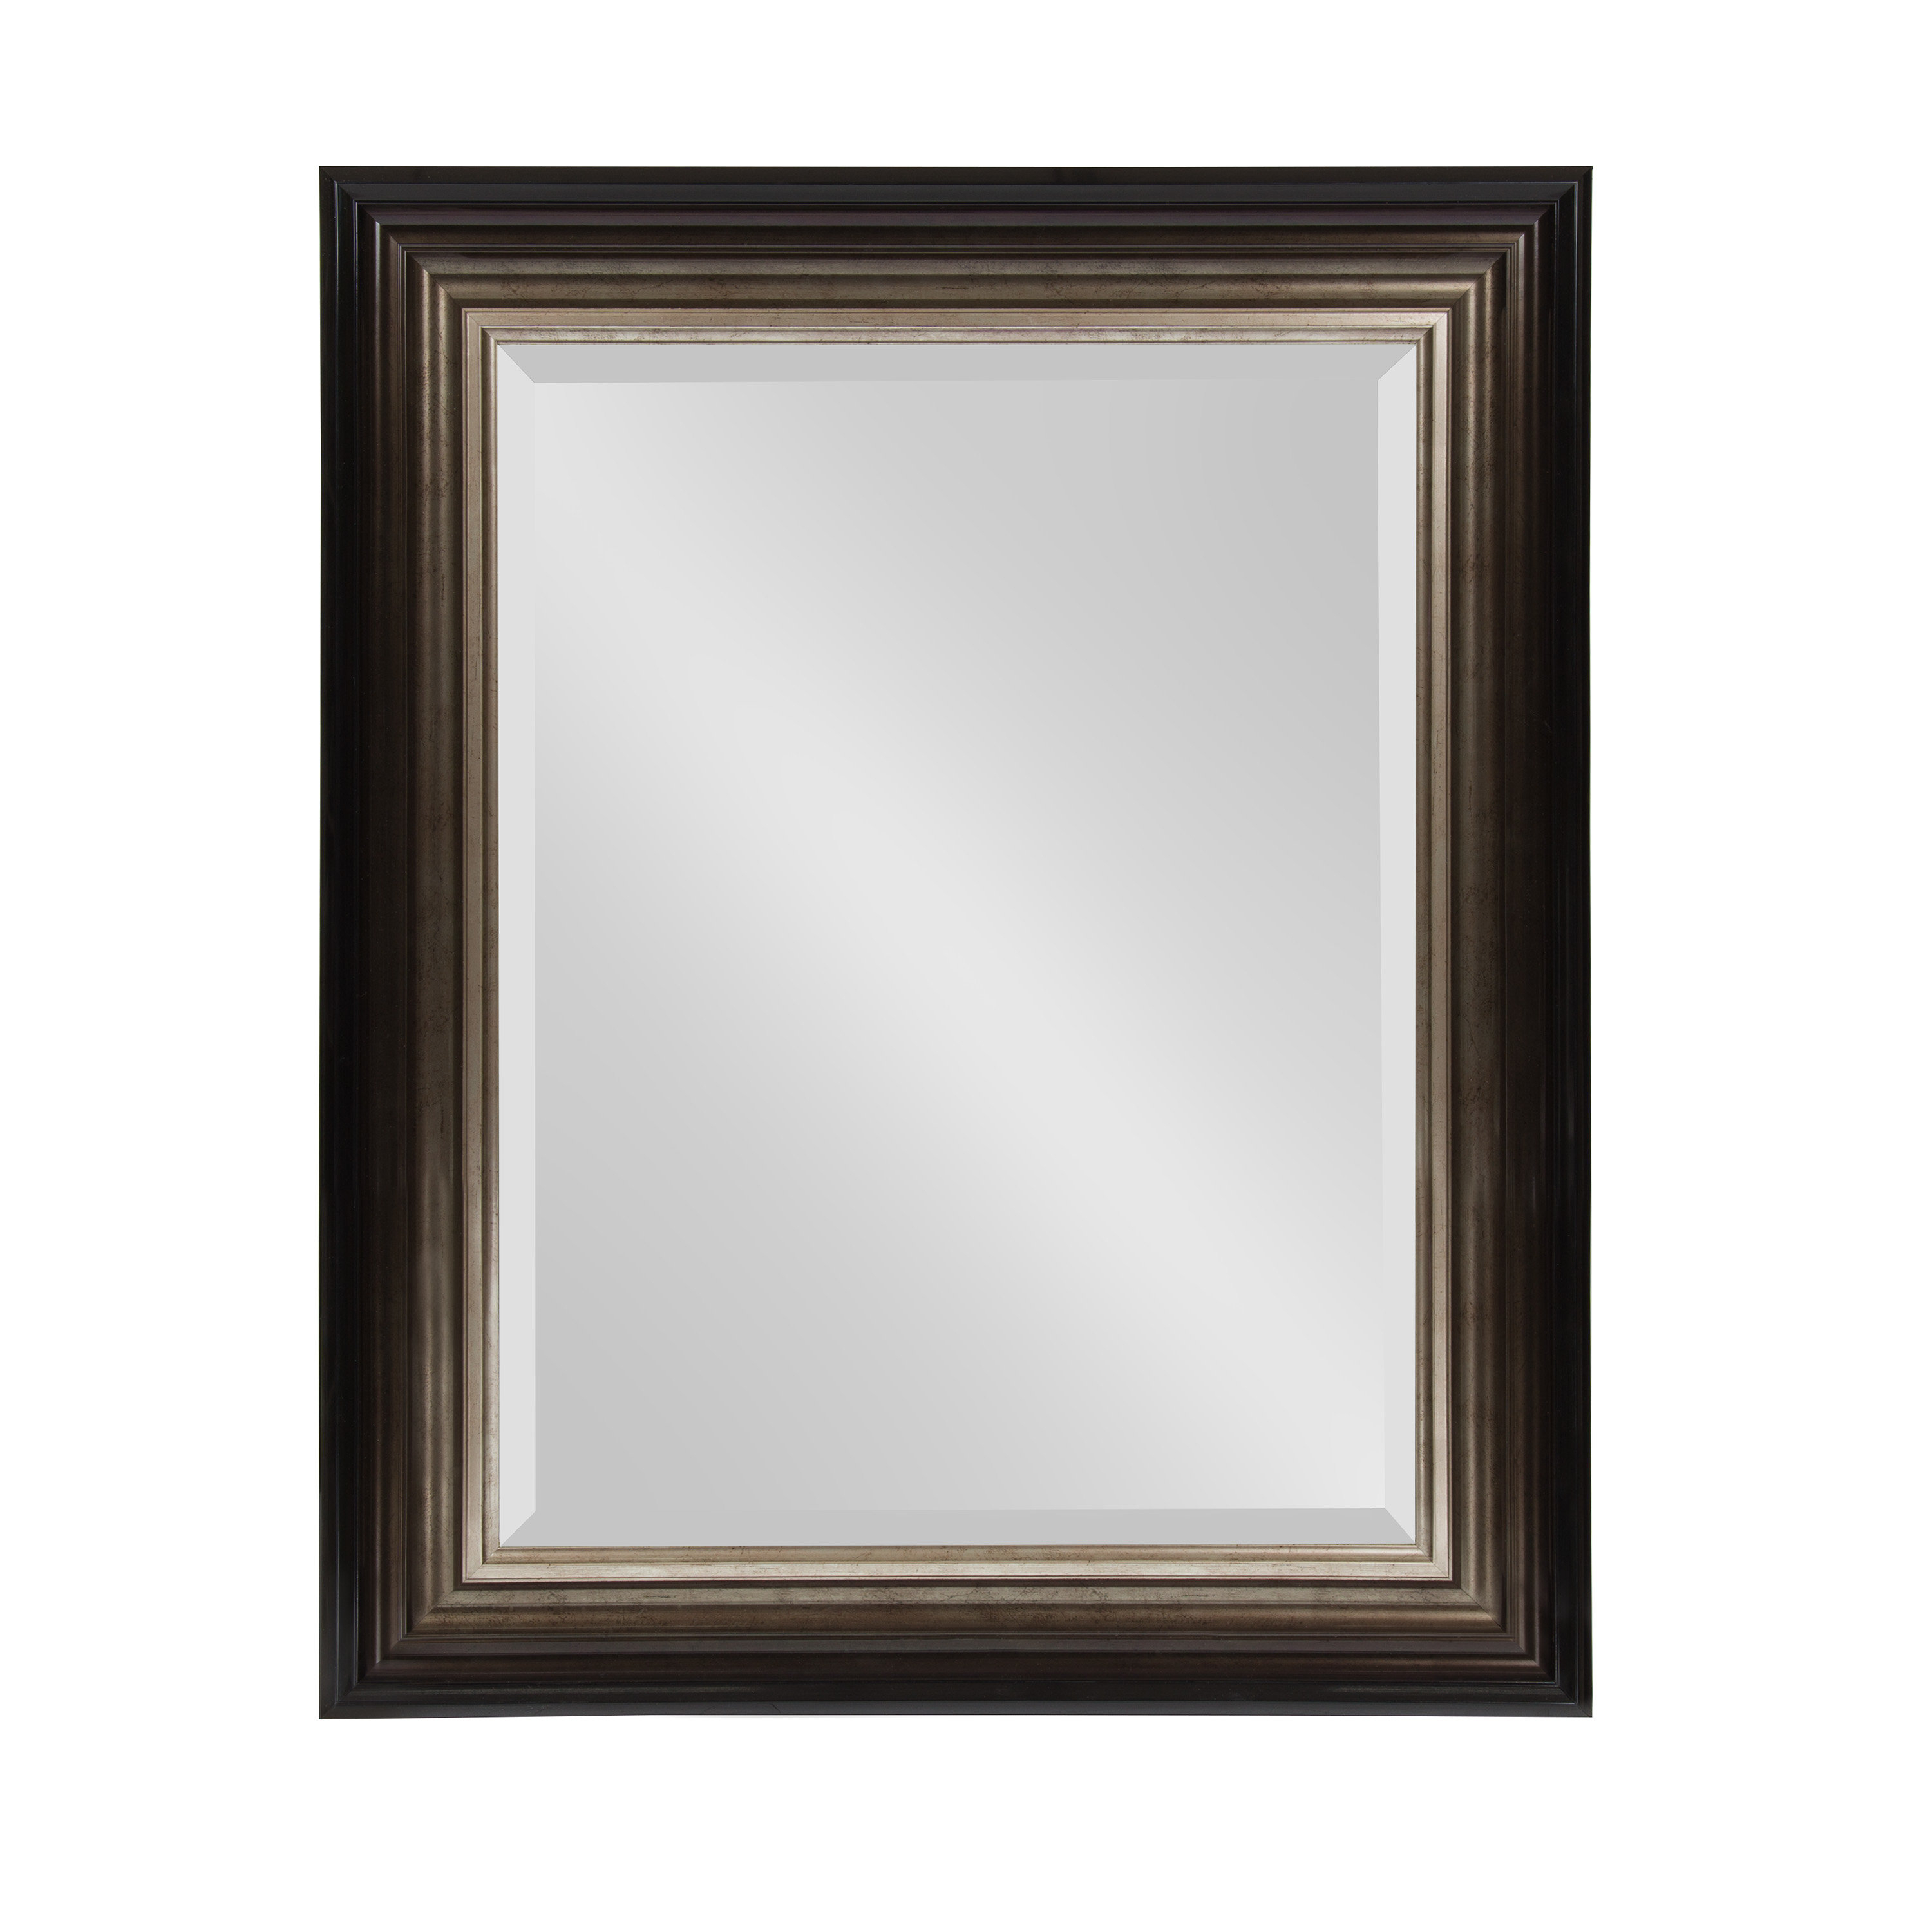 2020 Charlton Home Saltford Framed Rectangle Accent Mirror For Kristy Rectangular Beveled Vanity Mirrors In Distressed (View 14 of 20)